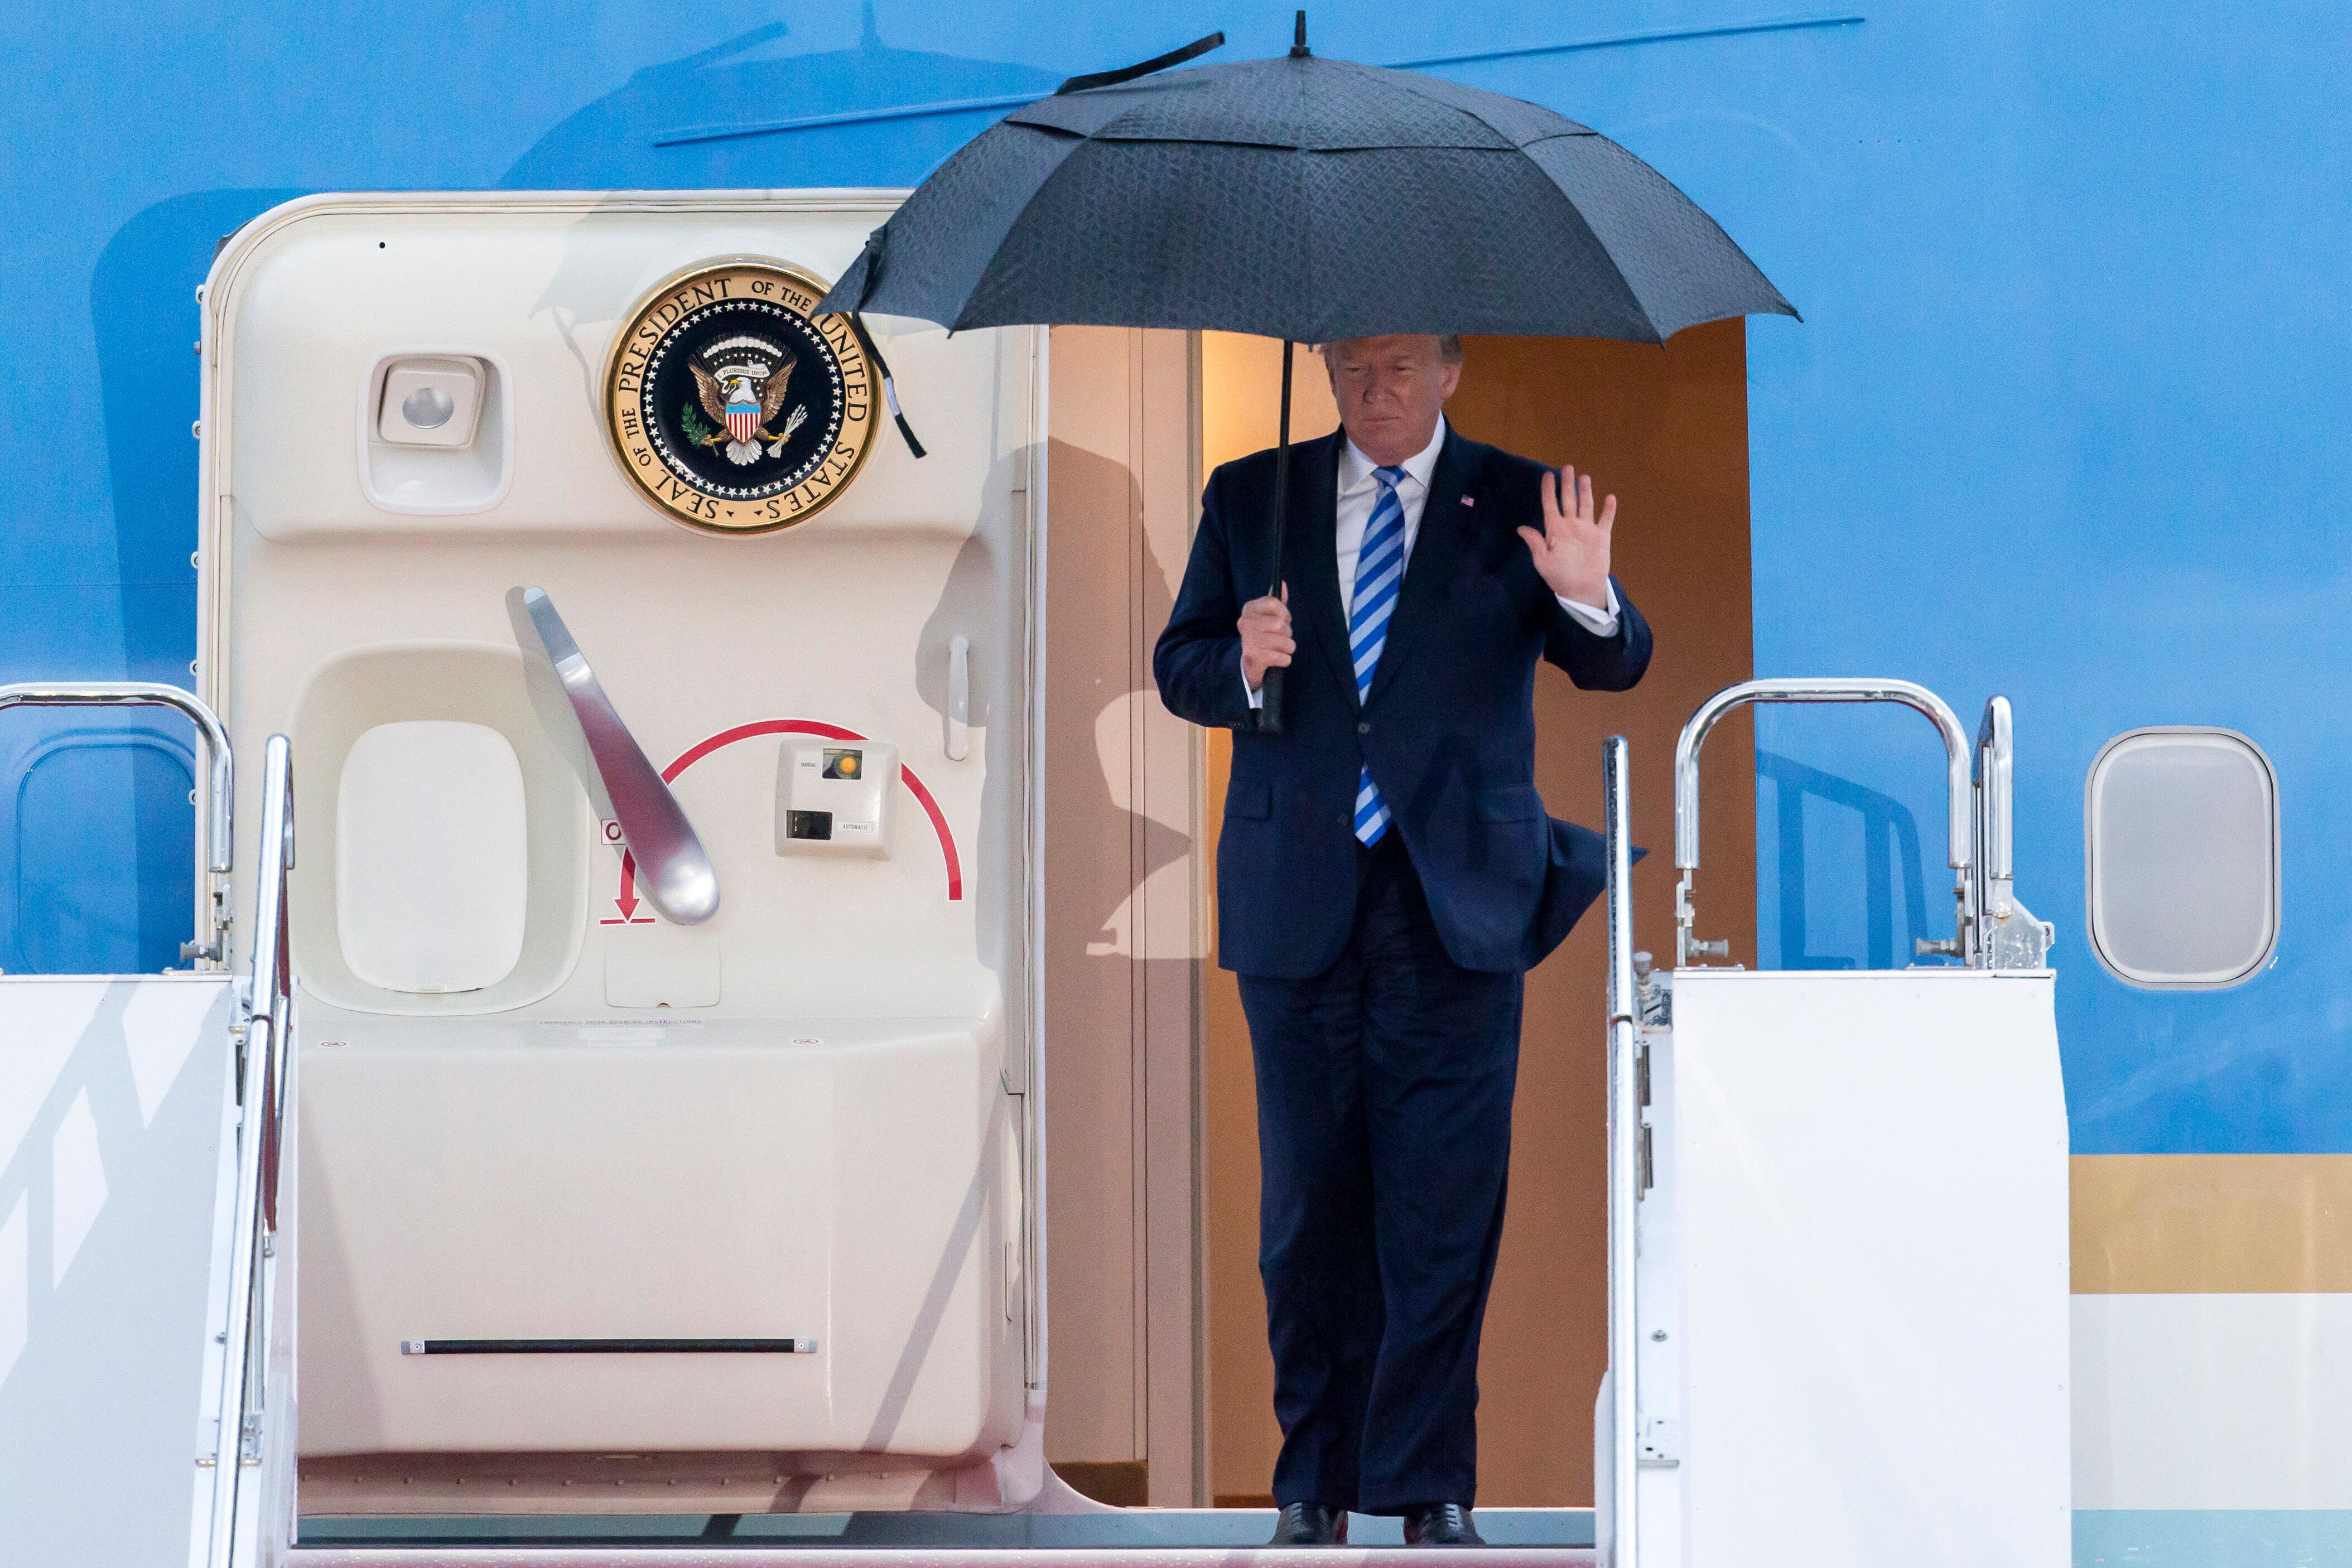 U.S. President Donald Trump waves as he arrives for the G-20 Osaka summit.